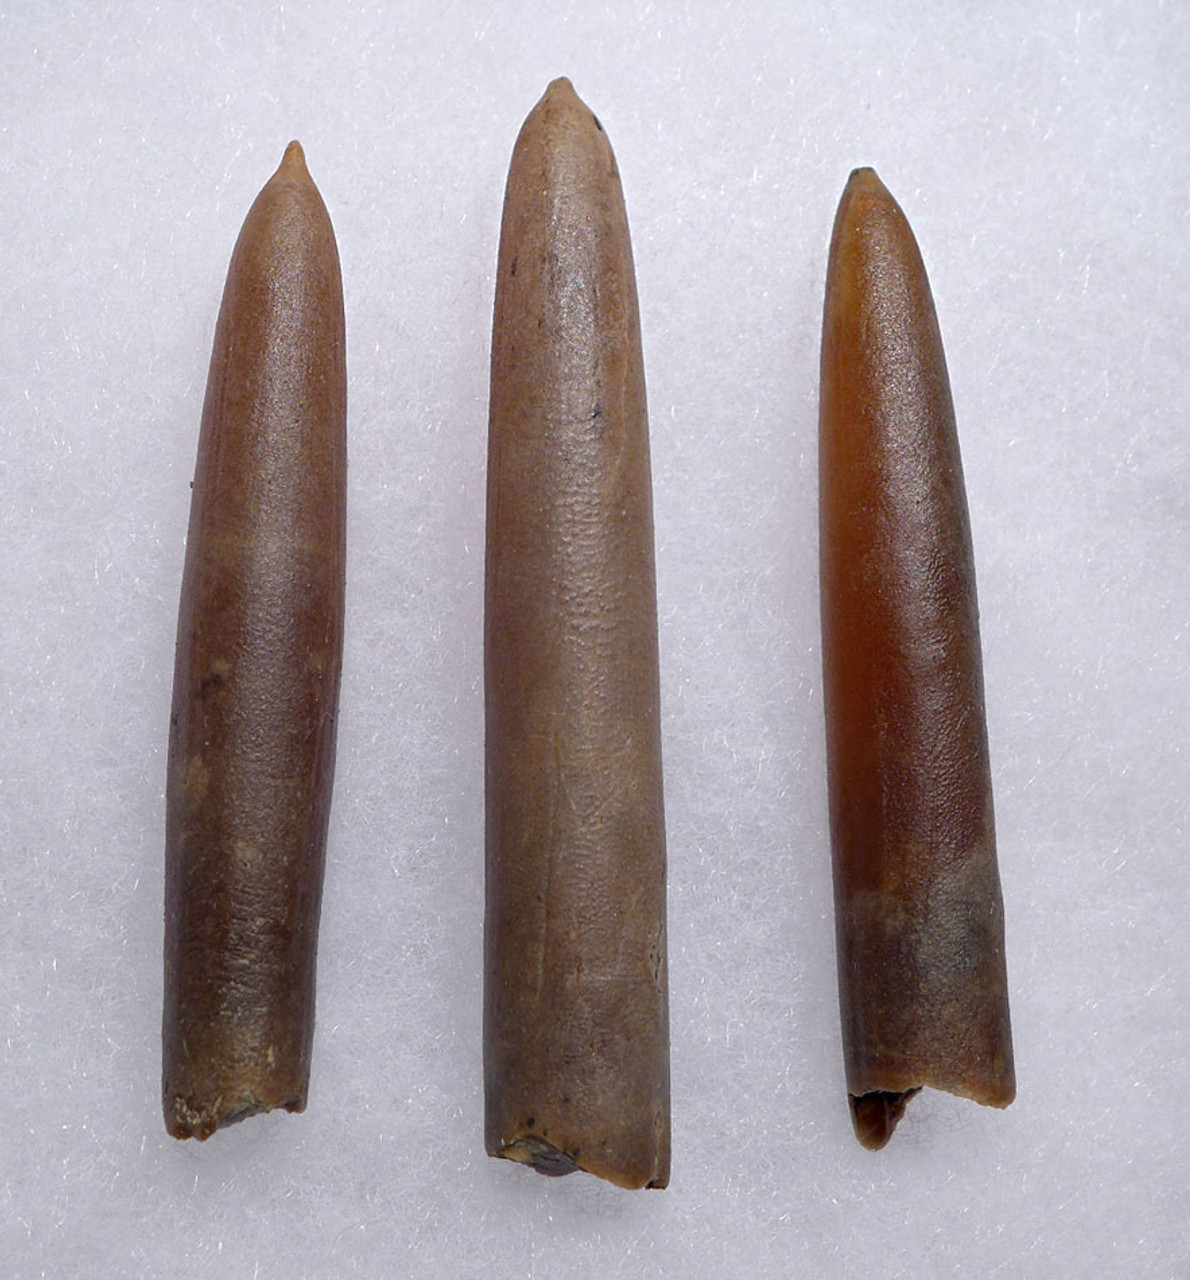 THREE NATURAL GONIOTEUTHIS SOLID CALCITE BELEMNITES FROM THE CRETACEOUS PERIOD *BEL105